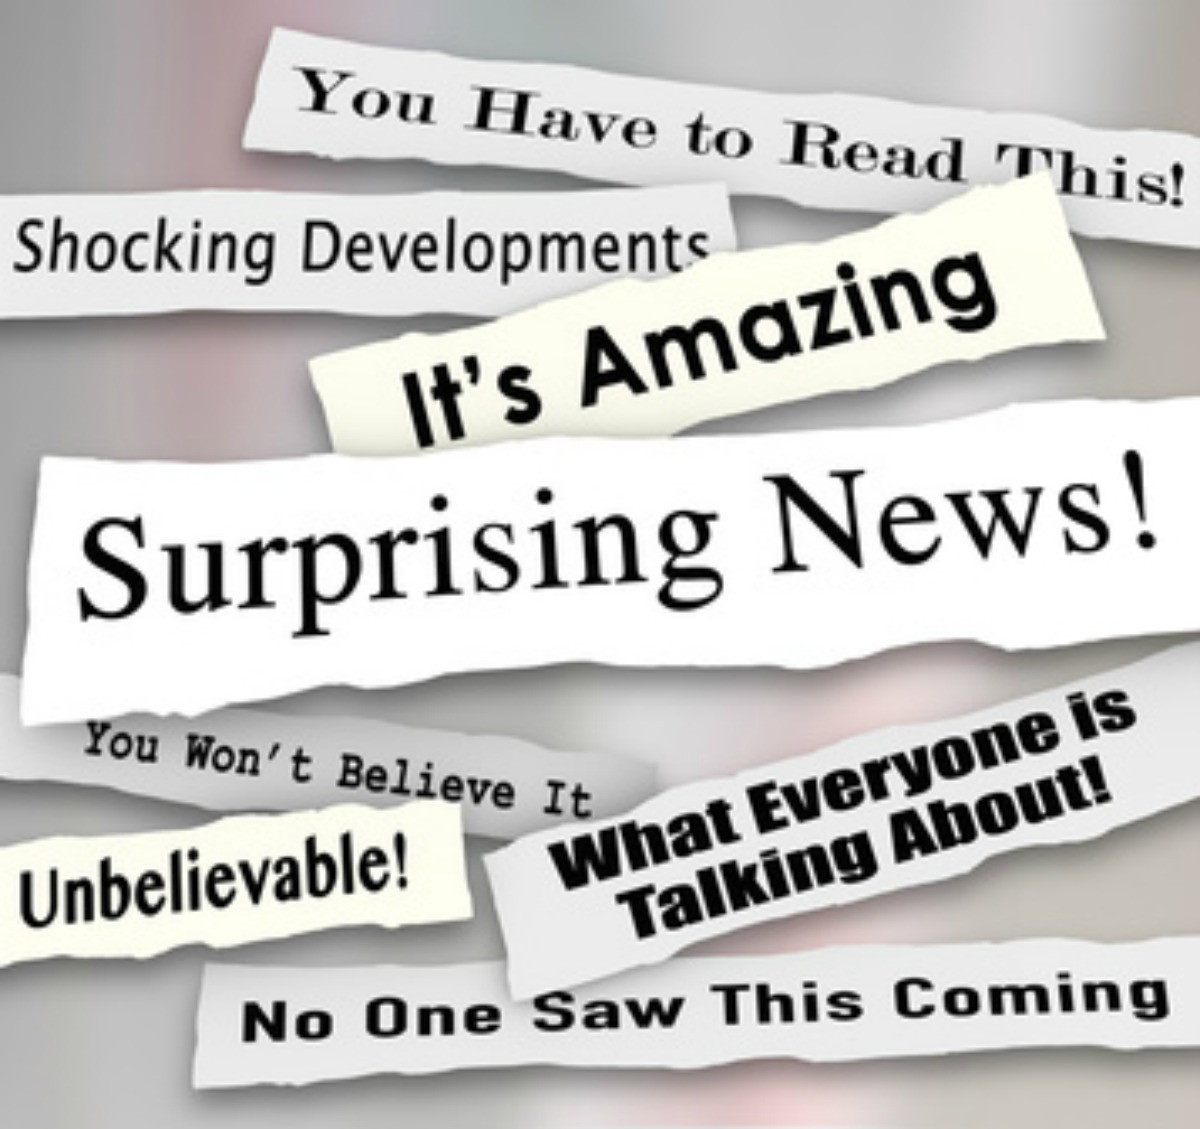 Extra, Extra! The Truth Exposed about Shocking Health Based Headlines!